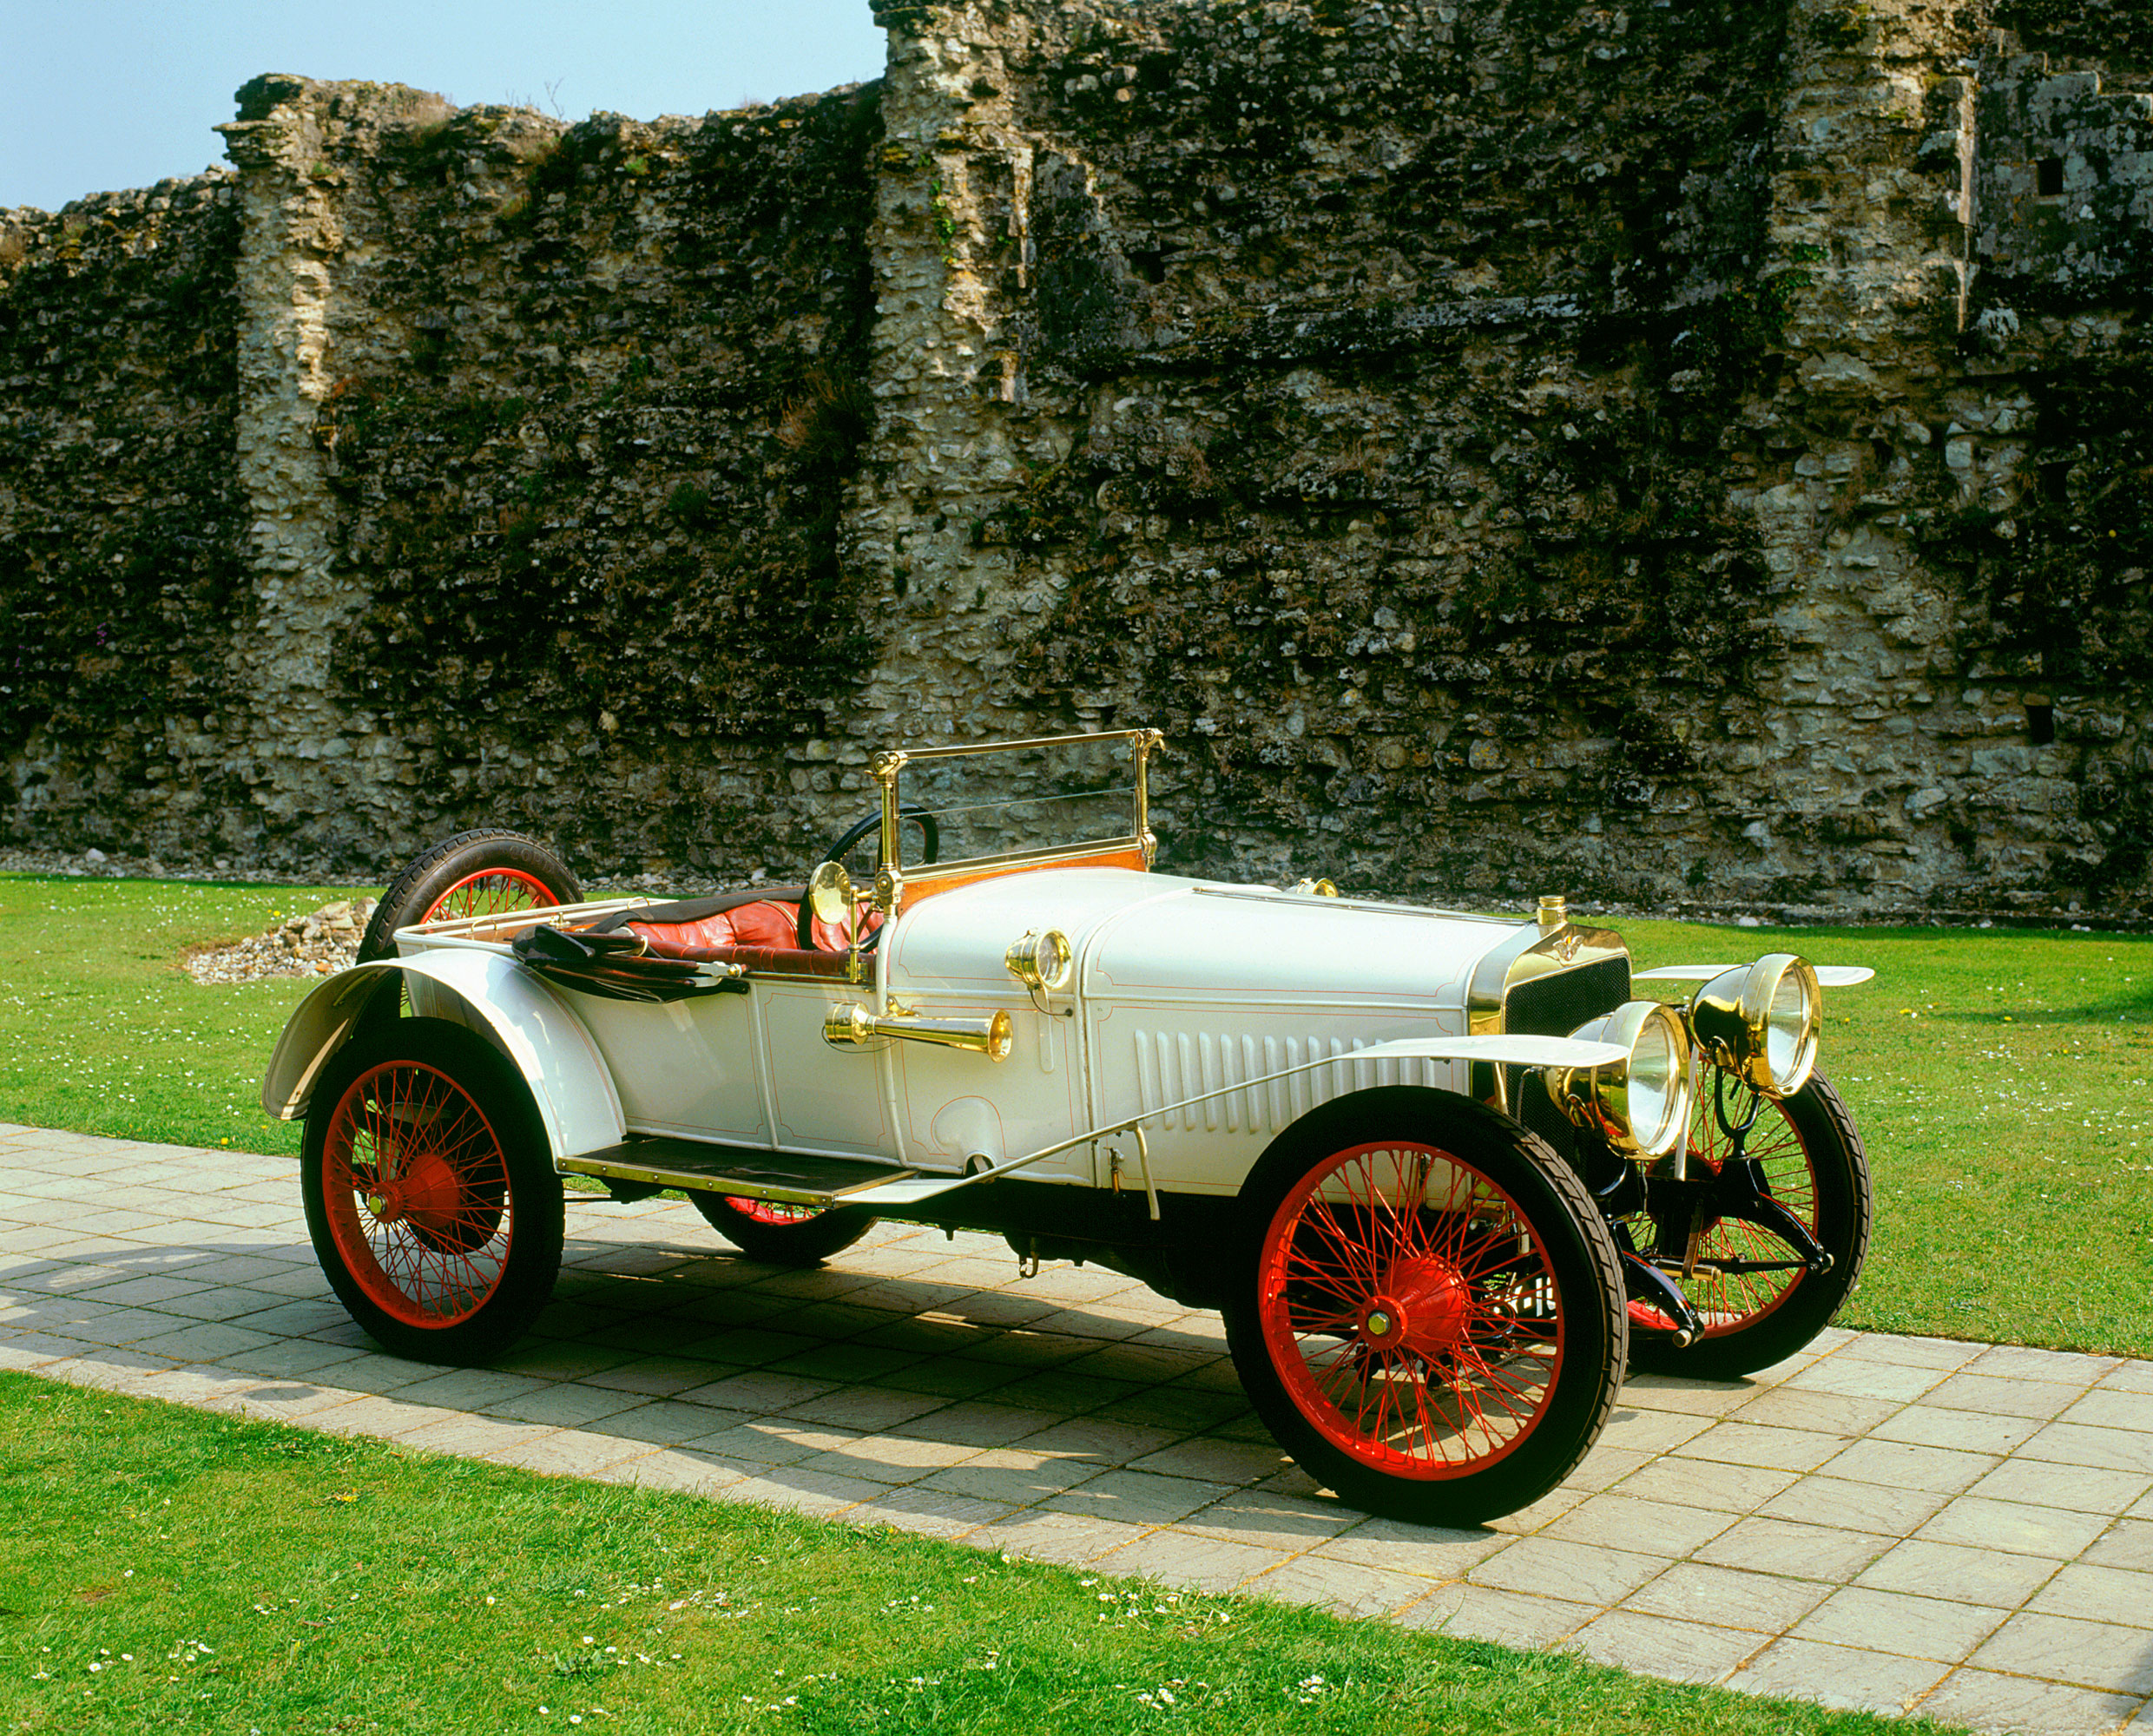 A 1912 Hispano Suiza Alfonso Xiii In The Abbey Ruins At Beaulieu